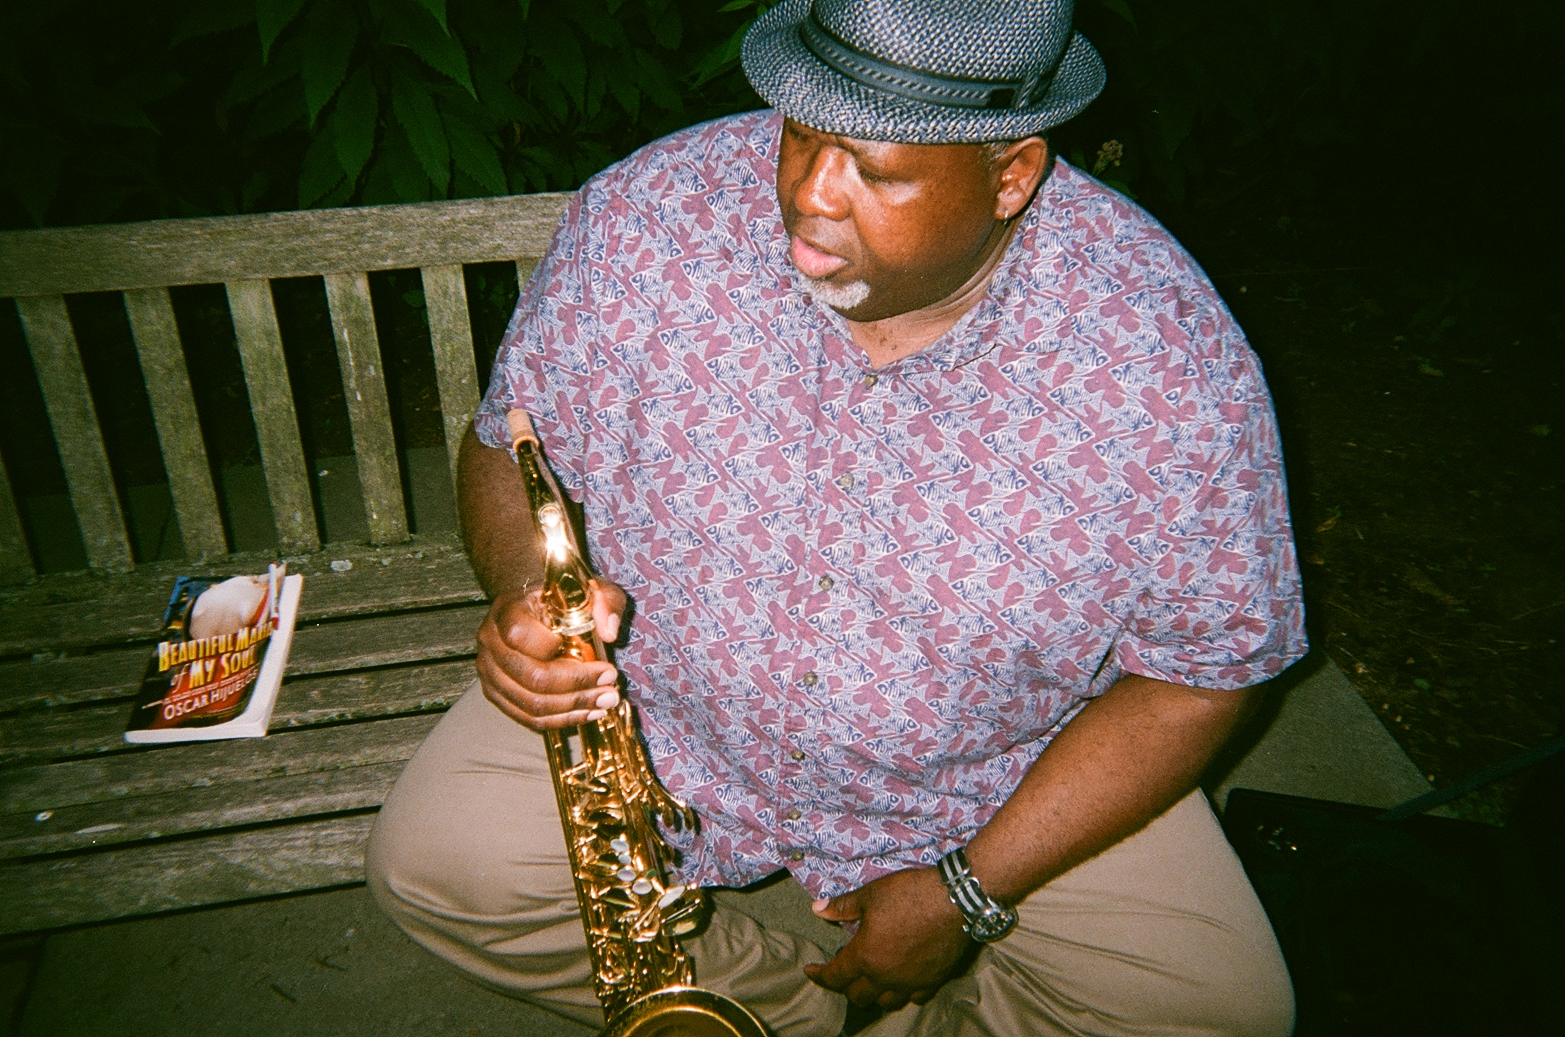 douglass sax photo no. 2.jpg